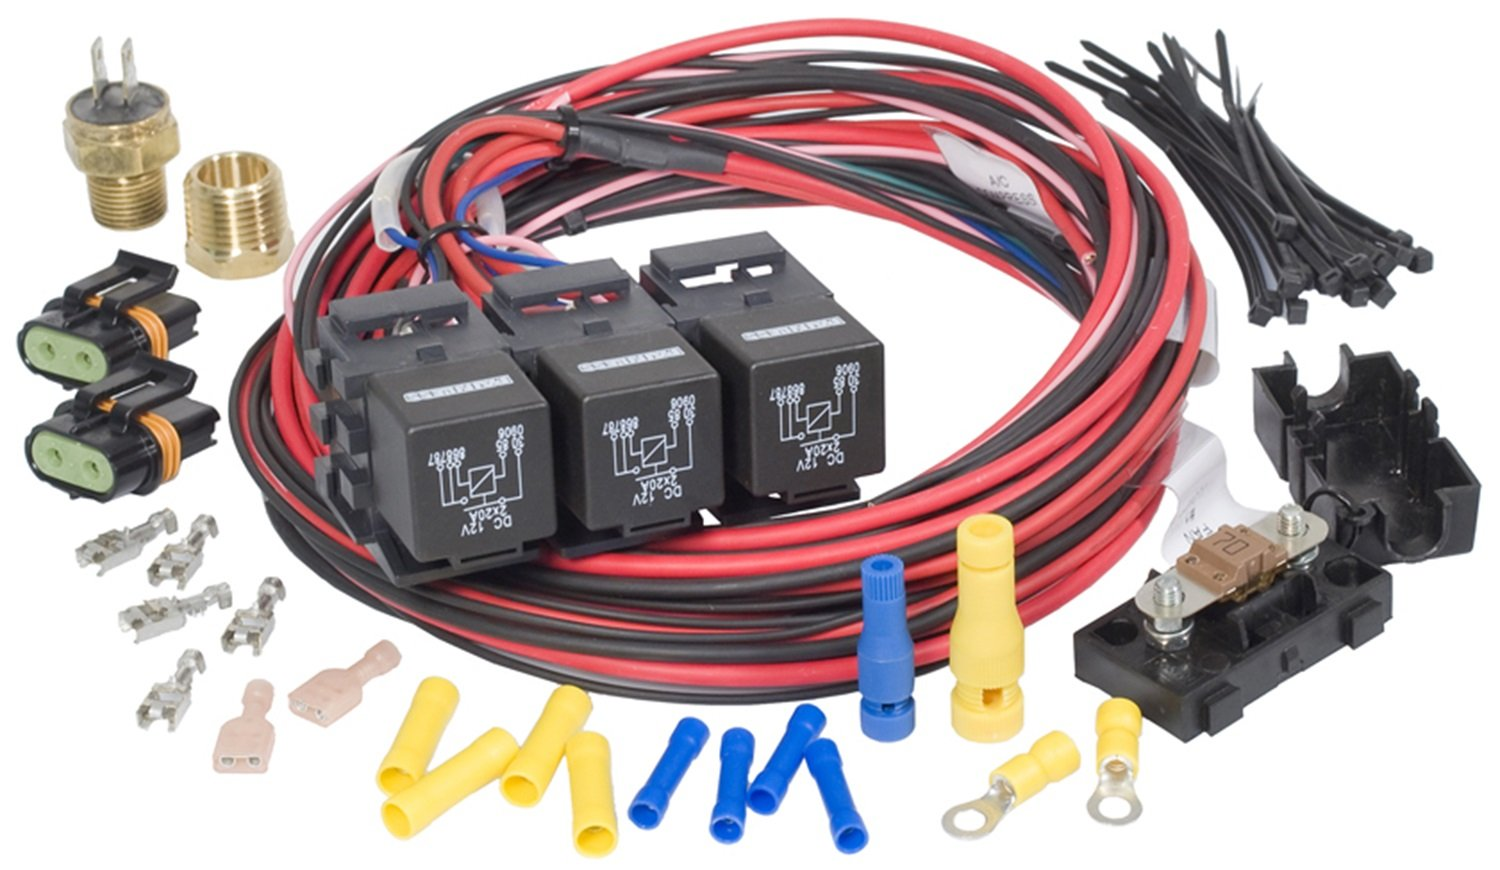 11 Install The Supplied Blower Relay Wiring Harness So That The X